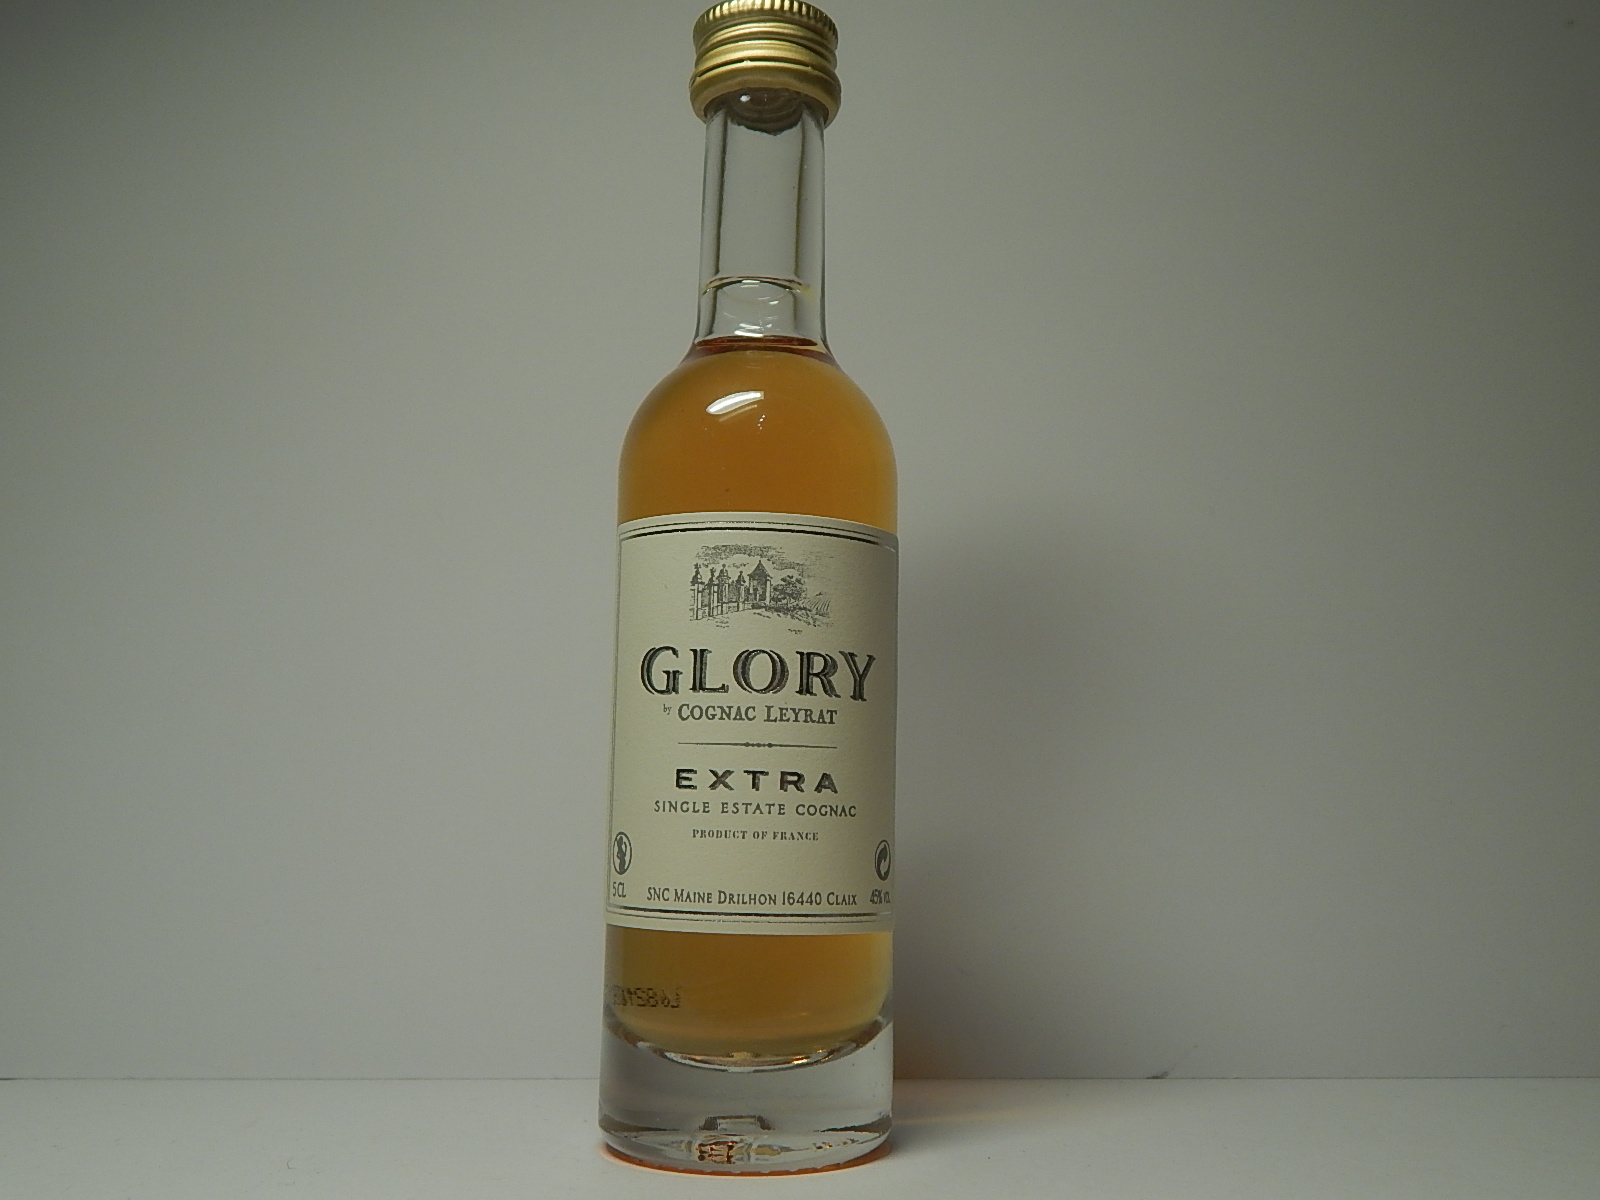 GLORY EXTRA Single Estate Cognac